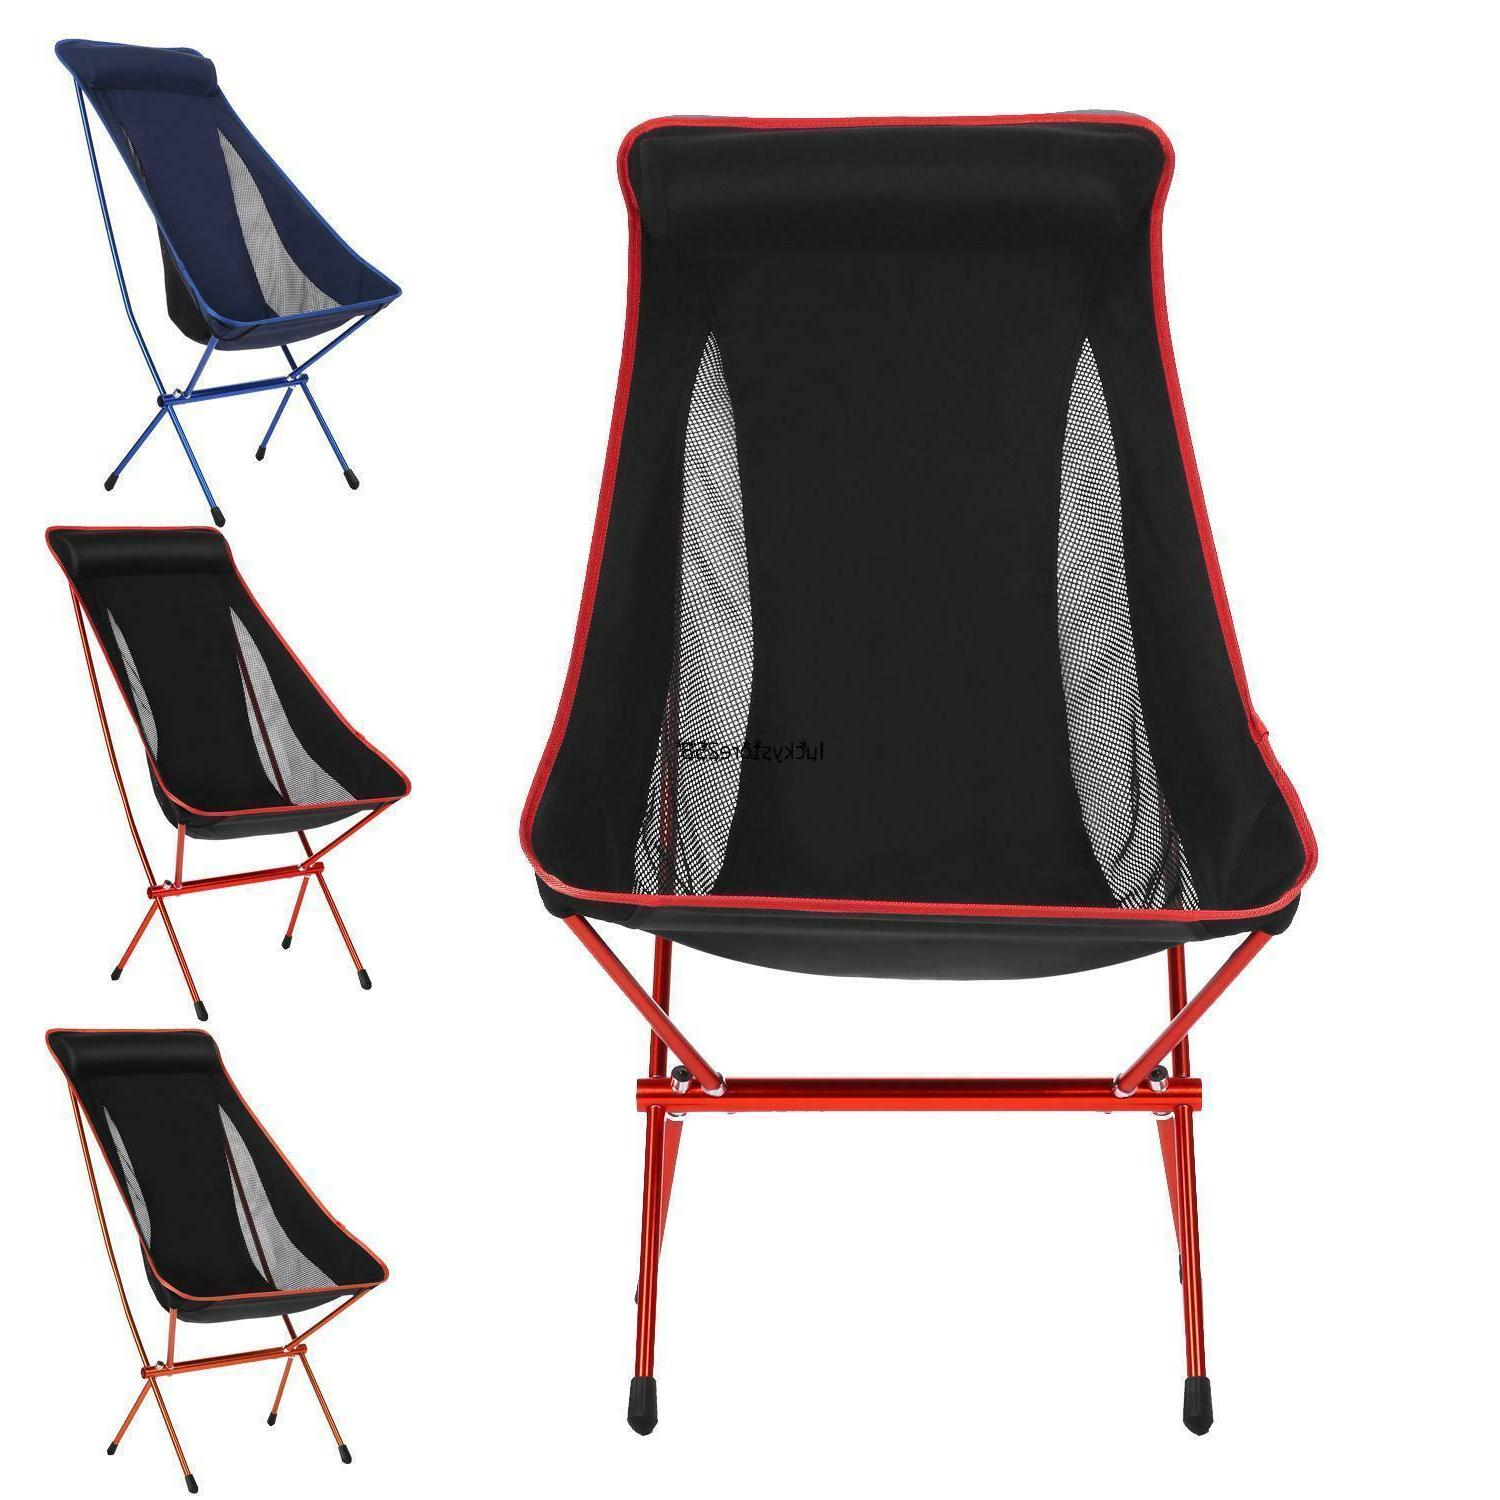 chairs case lounge patio folding lightweight outdoor